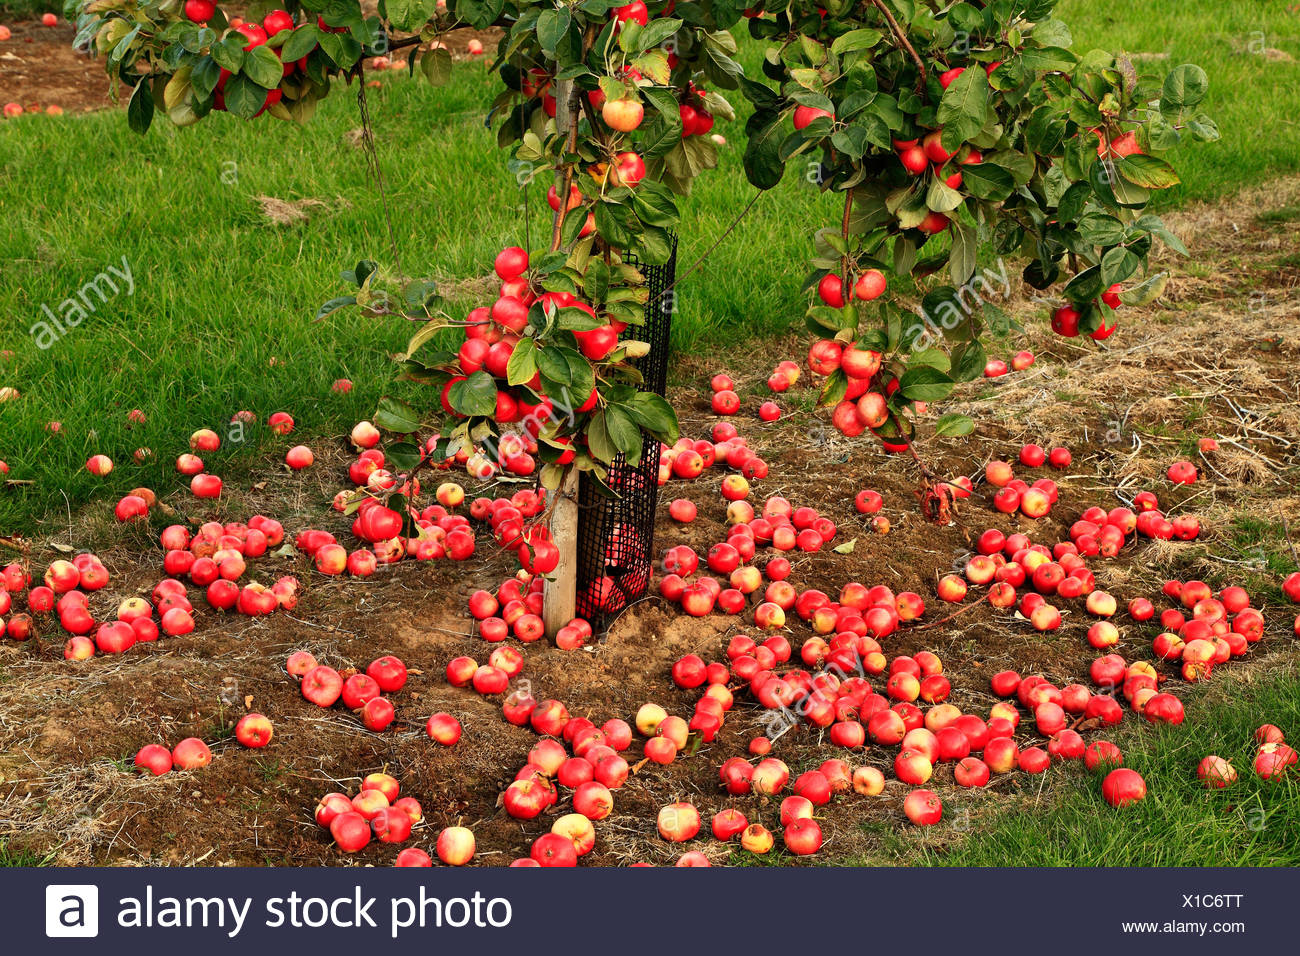 Fallen Apples on the ground, 'Red Miller's Seedling', malus domestica, apples variety varieties growing on tree Norfolk England Stock Photo